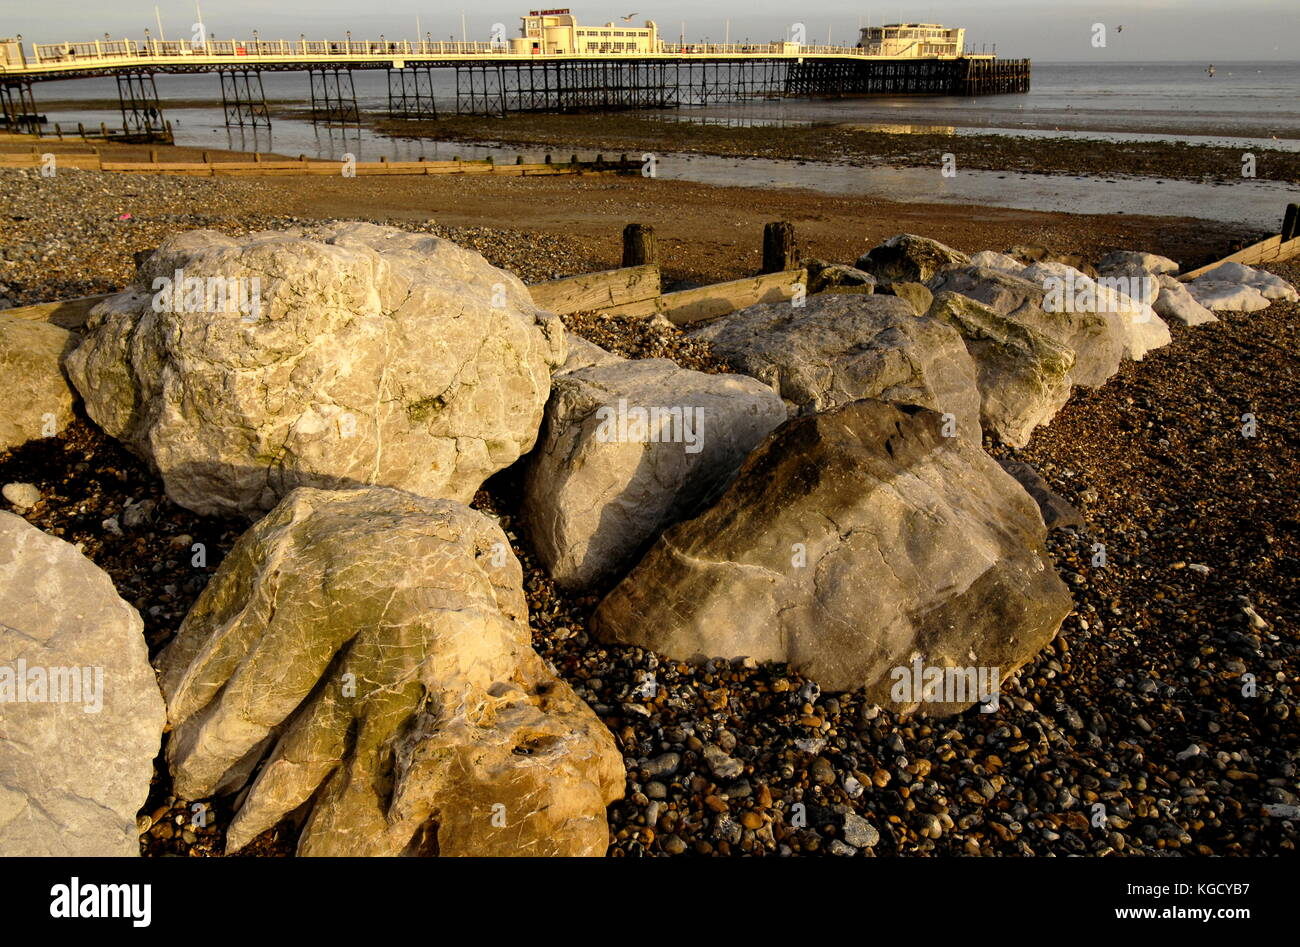 AJAXNETPHOTO. WORTHING, ENGLAND. - ROCKY SHORE - BOULDERS PLACED ON THE BEACH TO HELP REDUCE COASTAL EROSION. PHOTO:JONATHAN - Stock Image